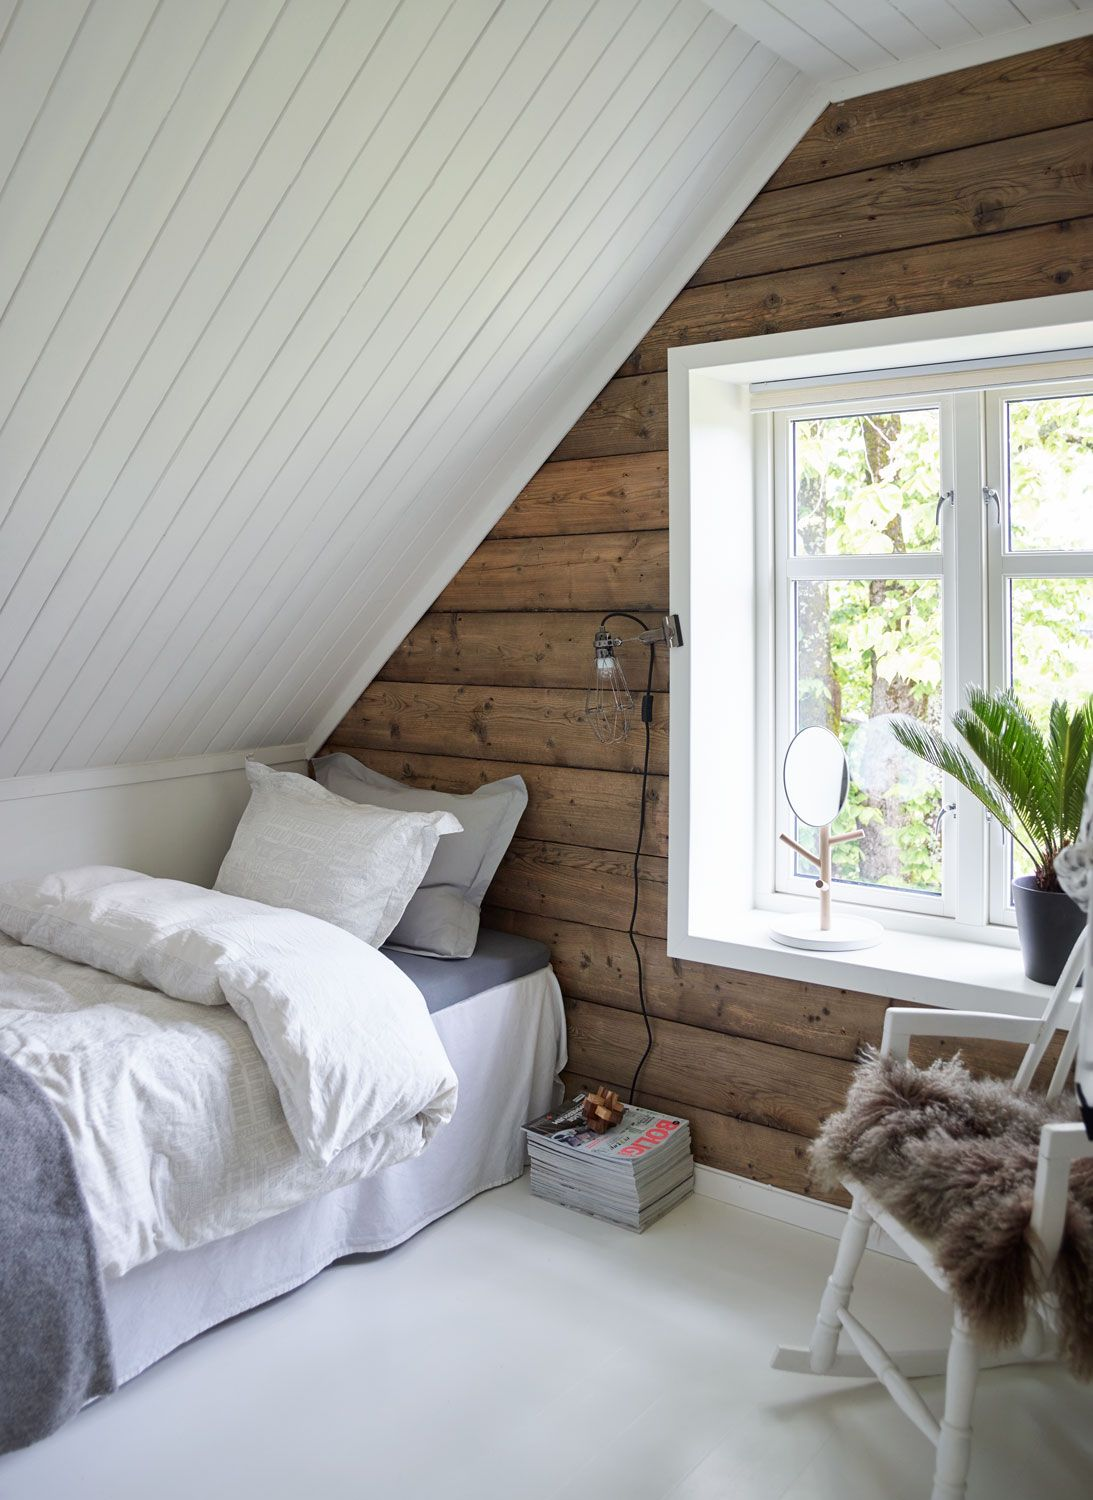 Attic Bedroom Design And Decor Tips Spaces Pinterest Attic